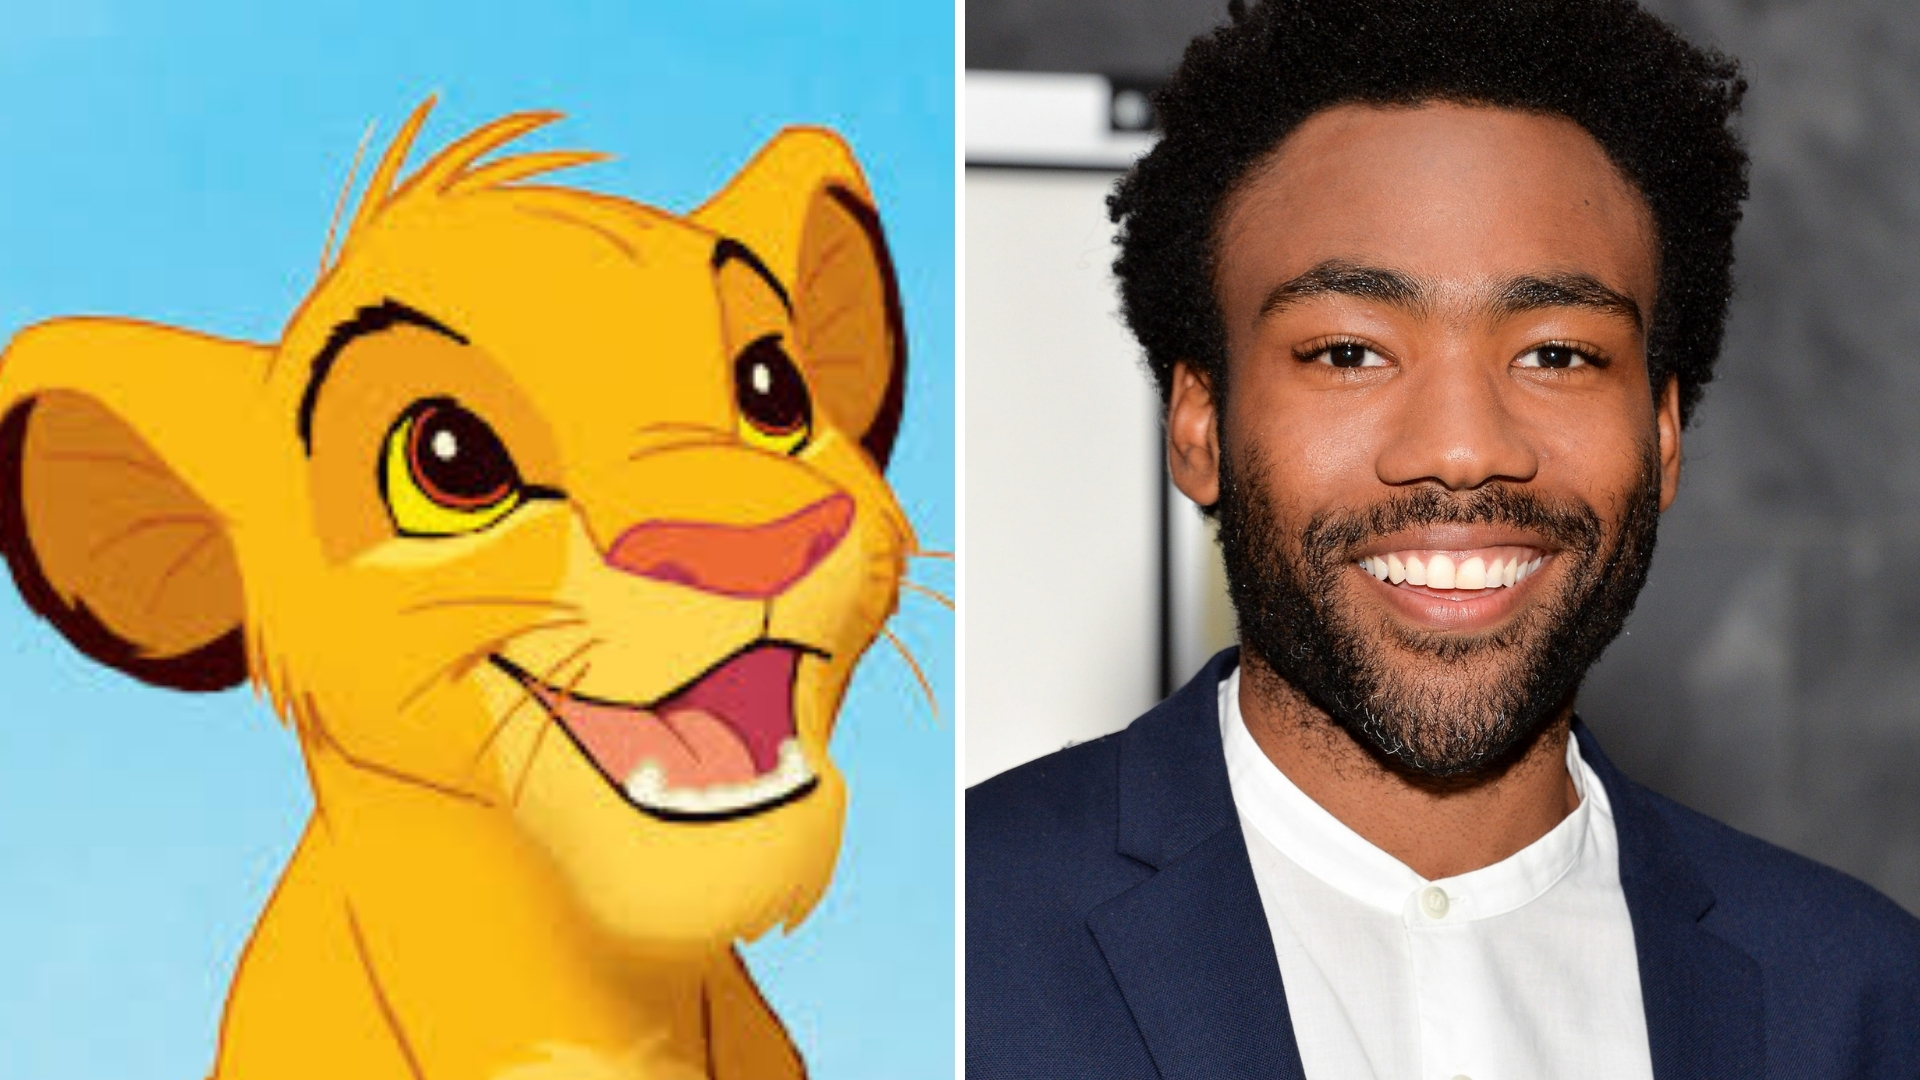 'The Lion King' teaser gives a glimpse of Simba